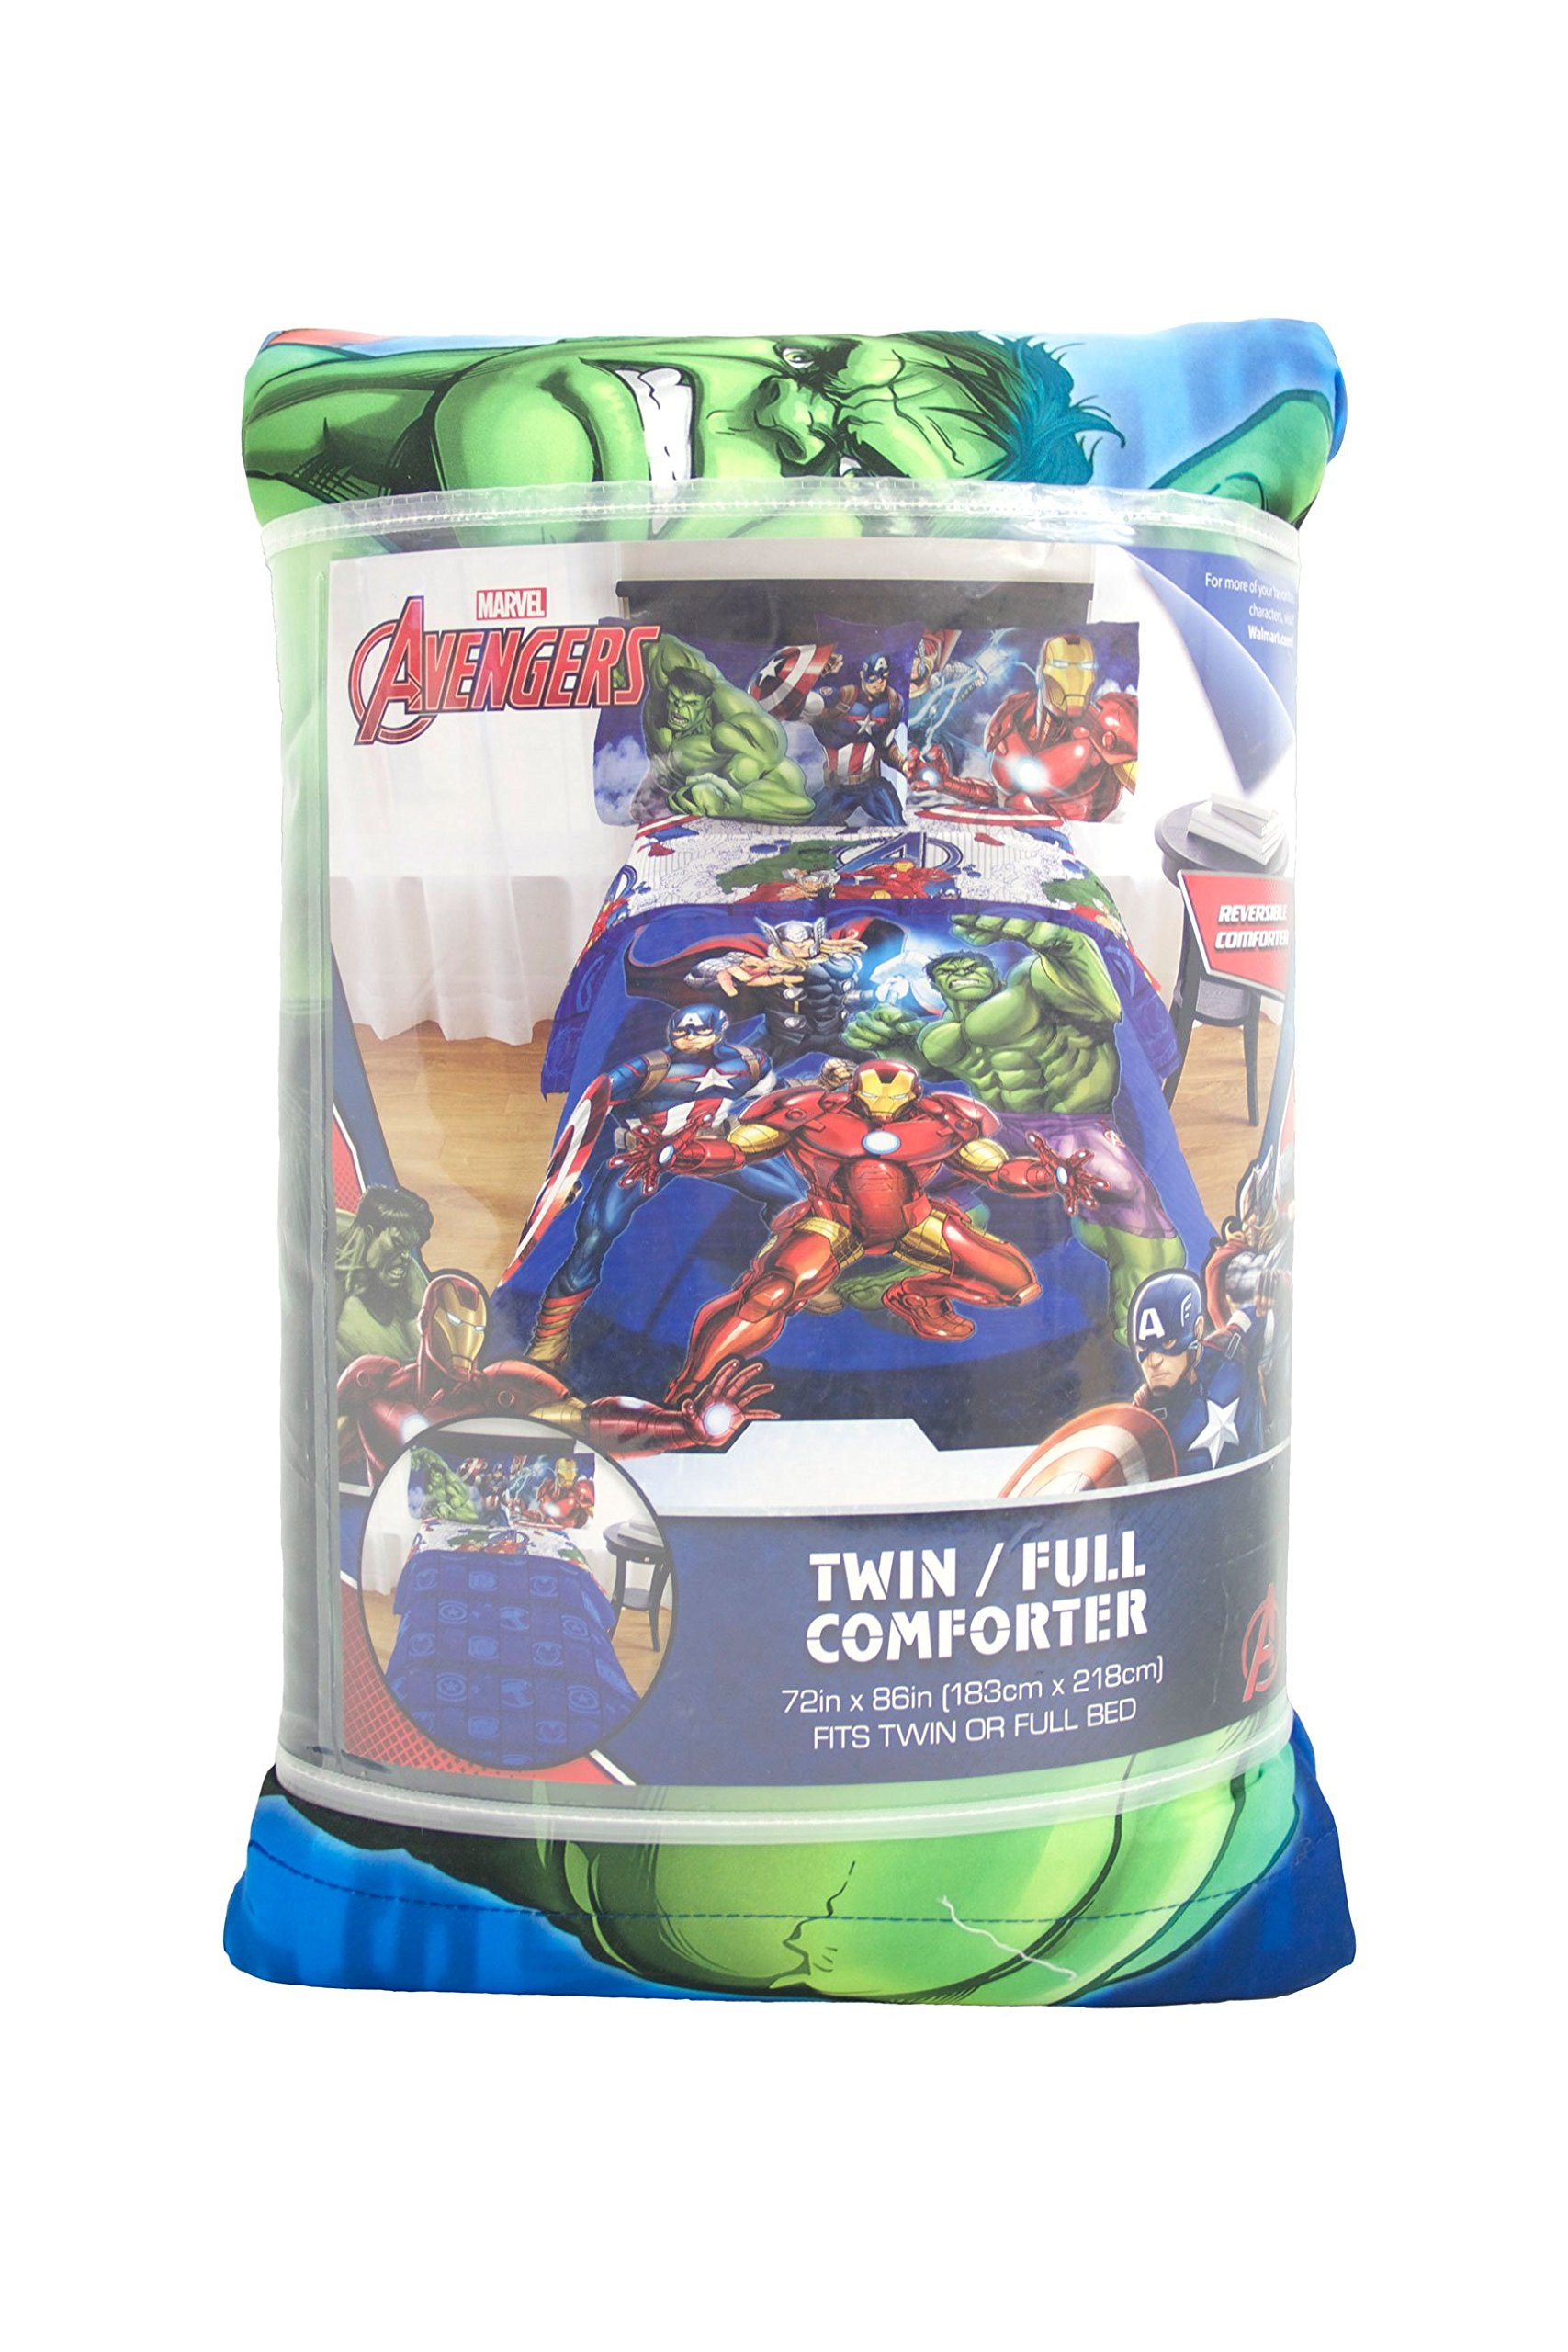 in teenage ninja character turtles x more mutant sets wars bleurghnow comforter star shopkins avengers bag trolls and walmart bed a choose com attic your